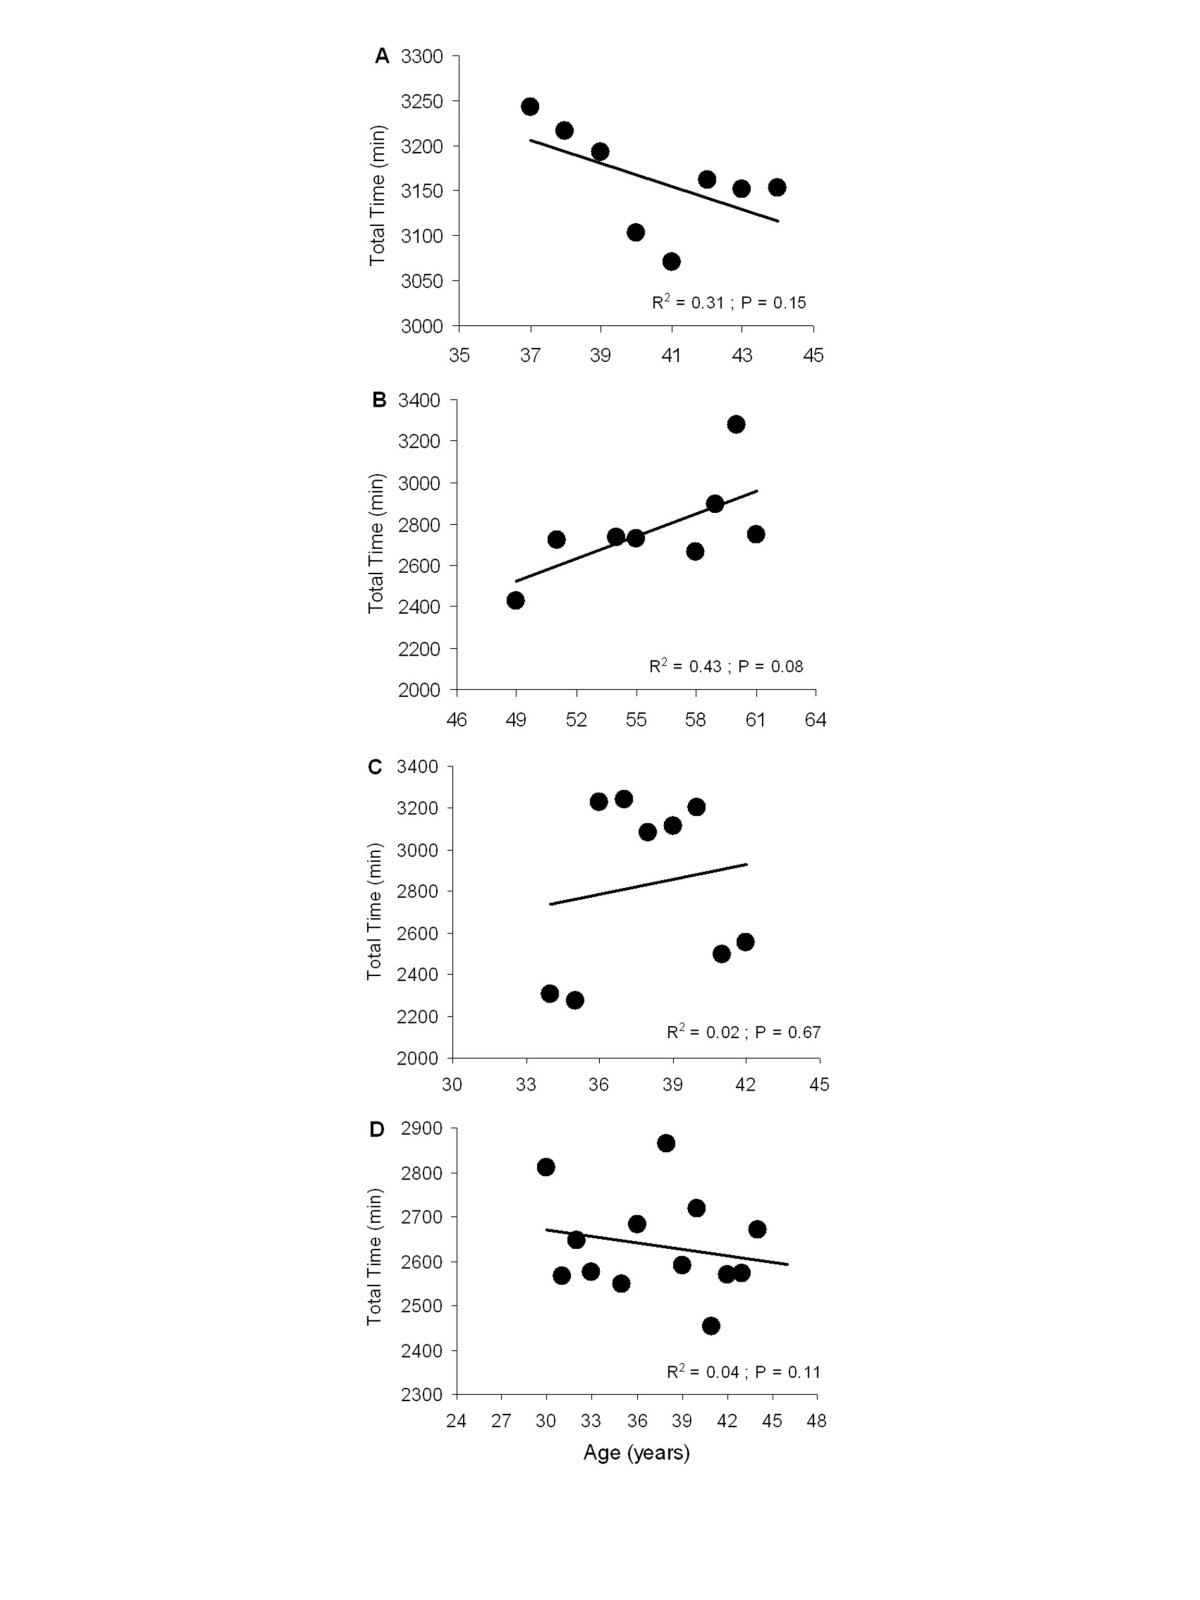 http://static-content.springer.com/image/art%3A10.1186%2F2046-7648-1-5/MediaObjects/13728_2012_Article_5_Fig2_HTML.jpg